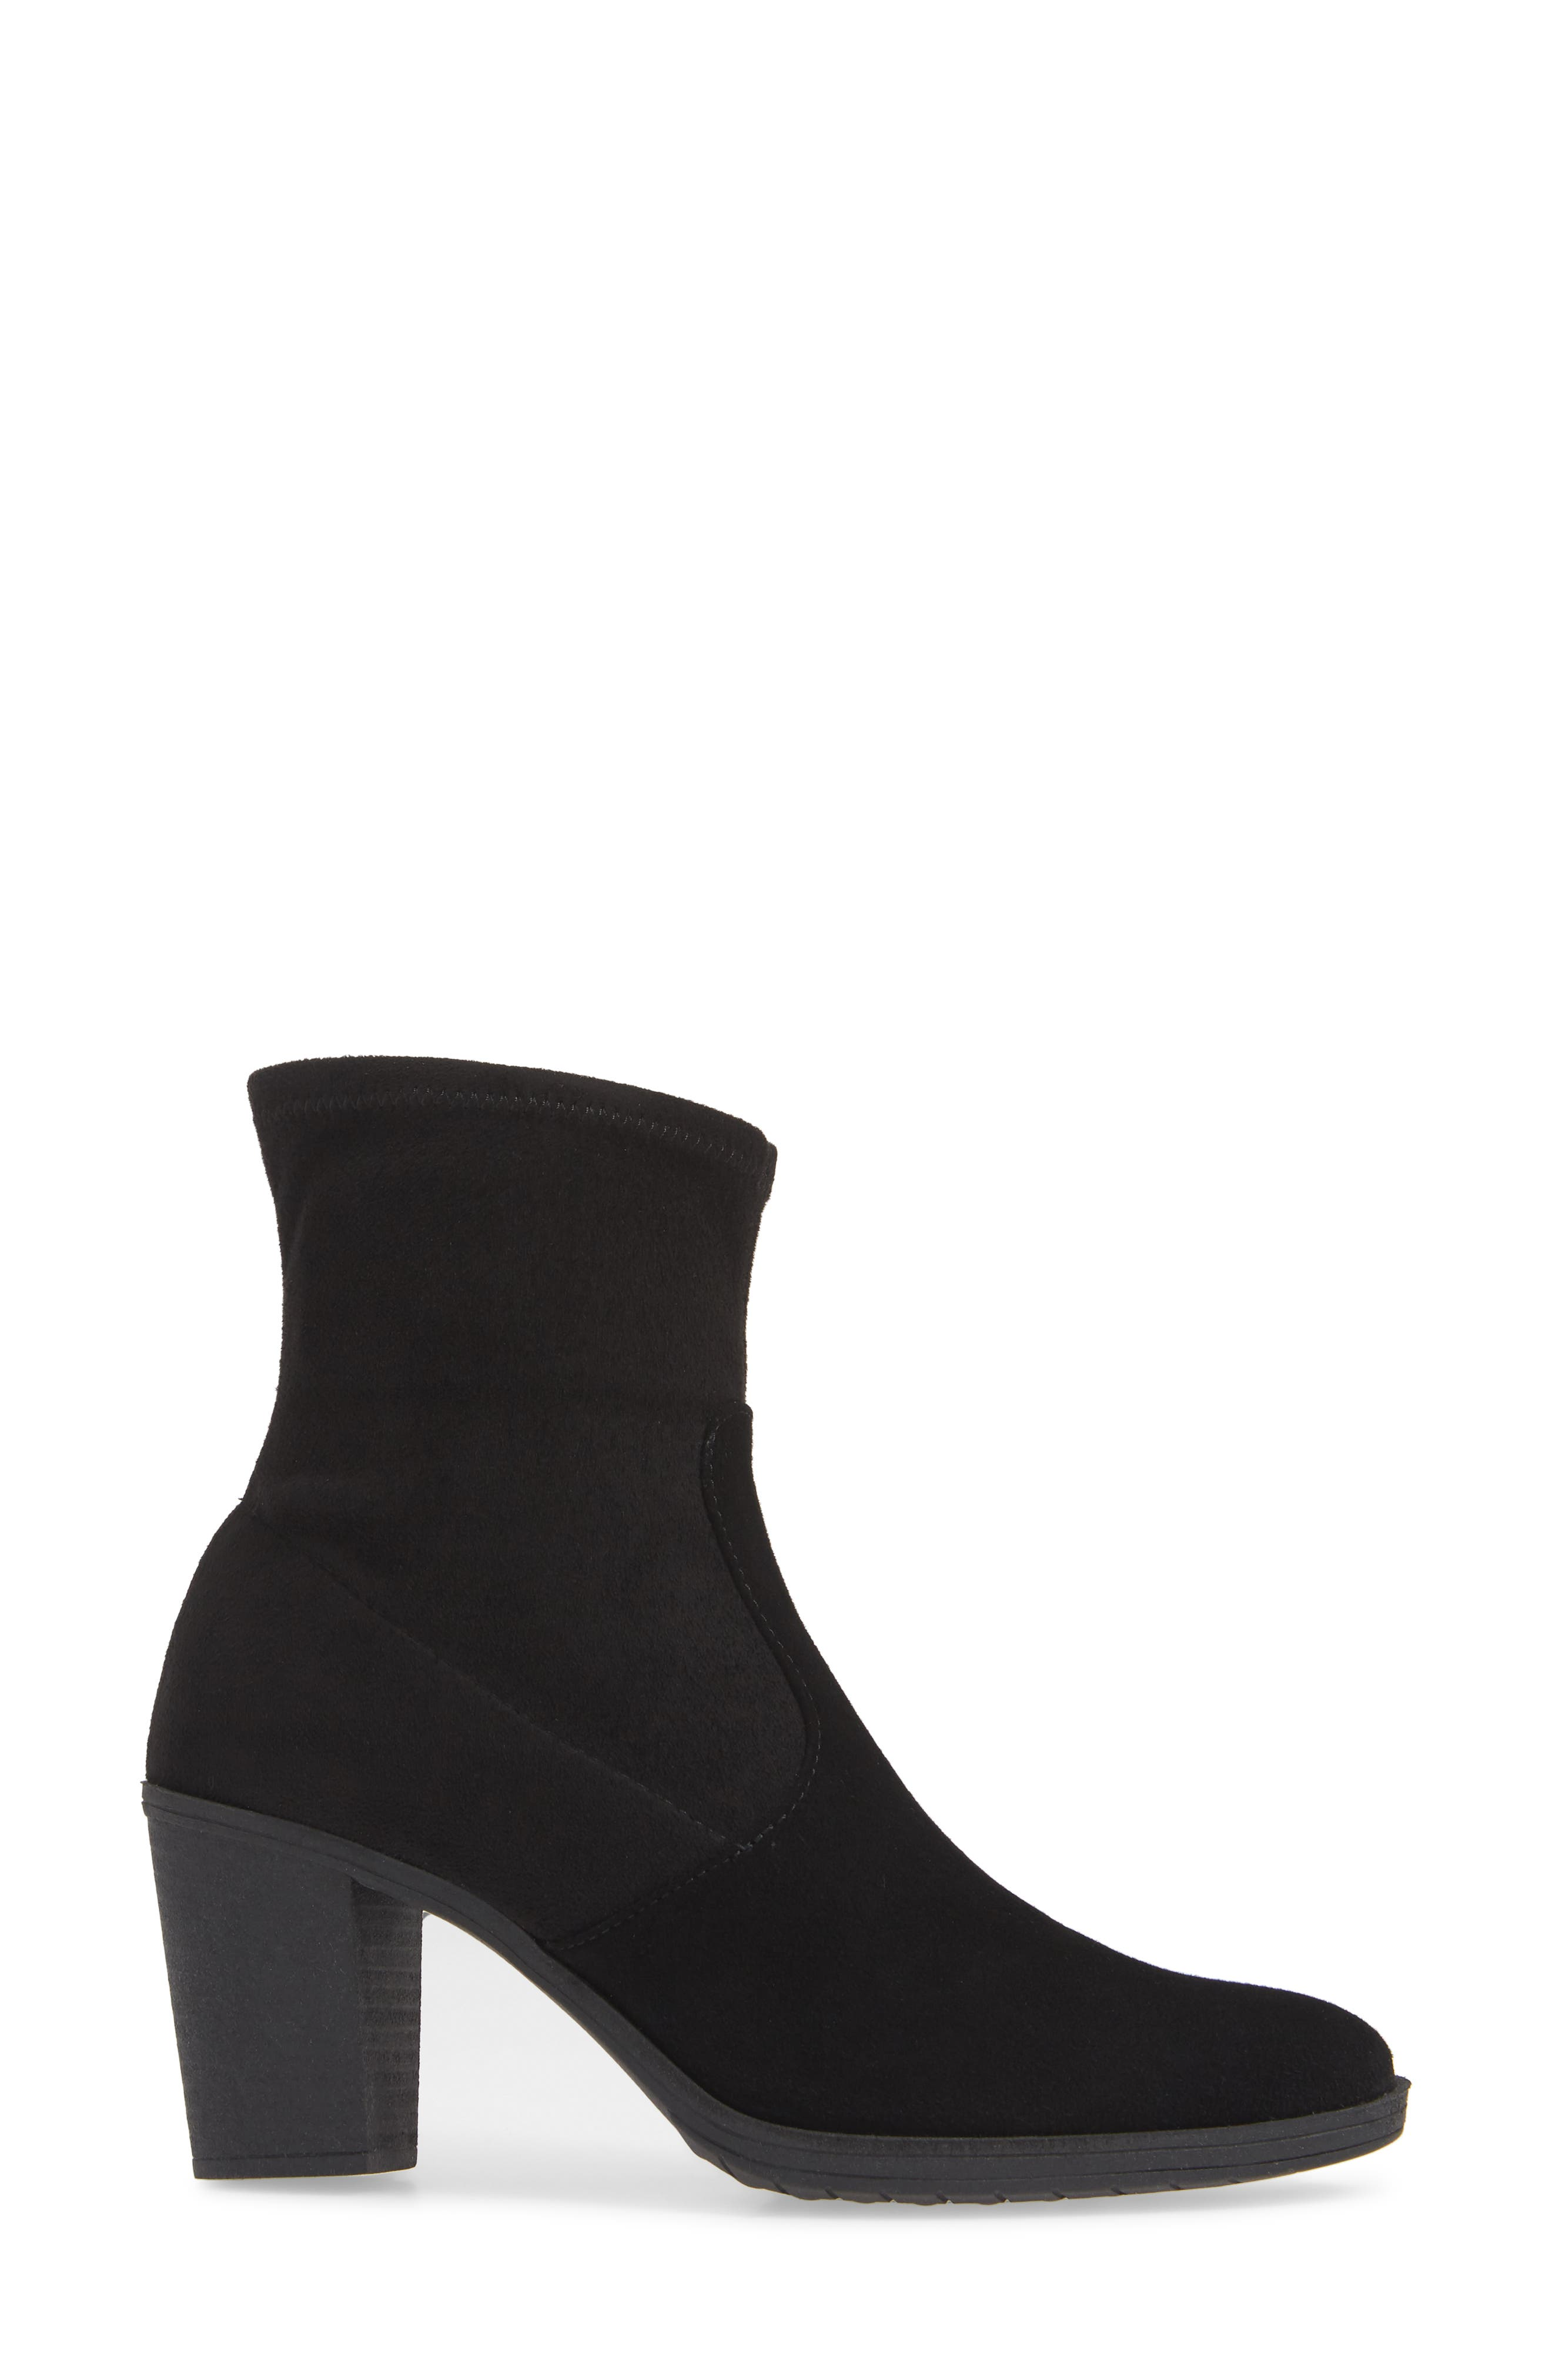 On The Rocks Bootie,                             Alternate thumbnail 3, color,                             BLACK SUEDE